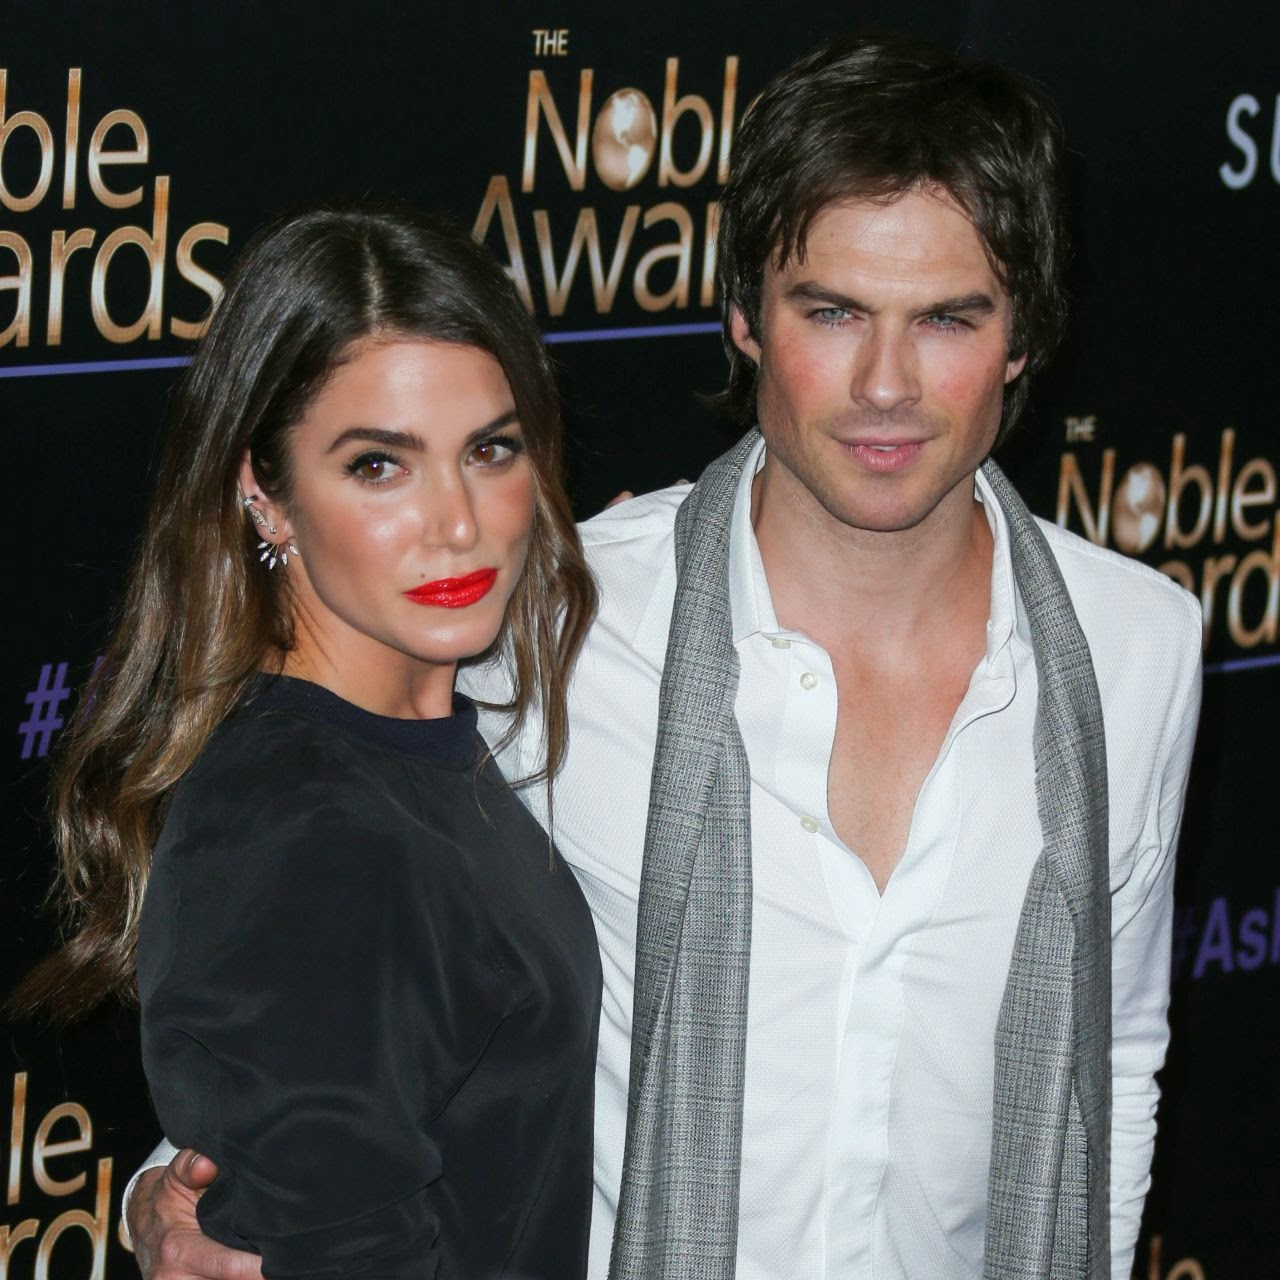 Nikki Reed and Ian Somerhalder are a glamorous couple at the 2015 Noble Awards